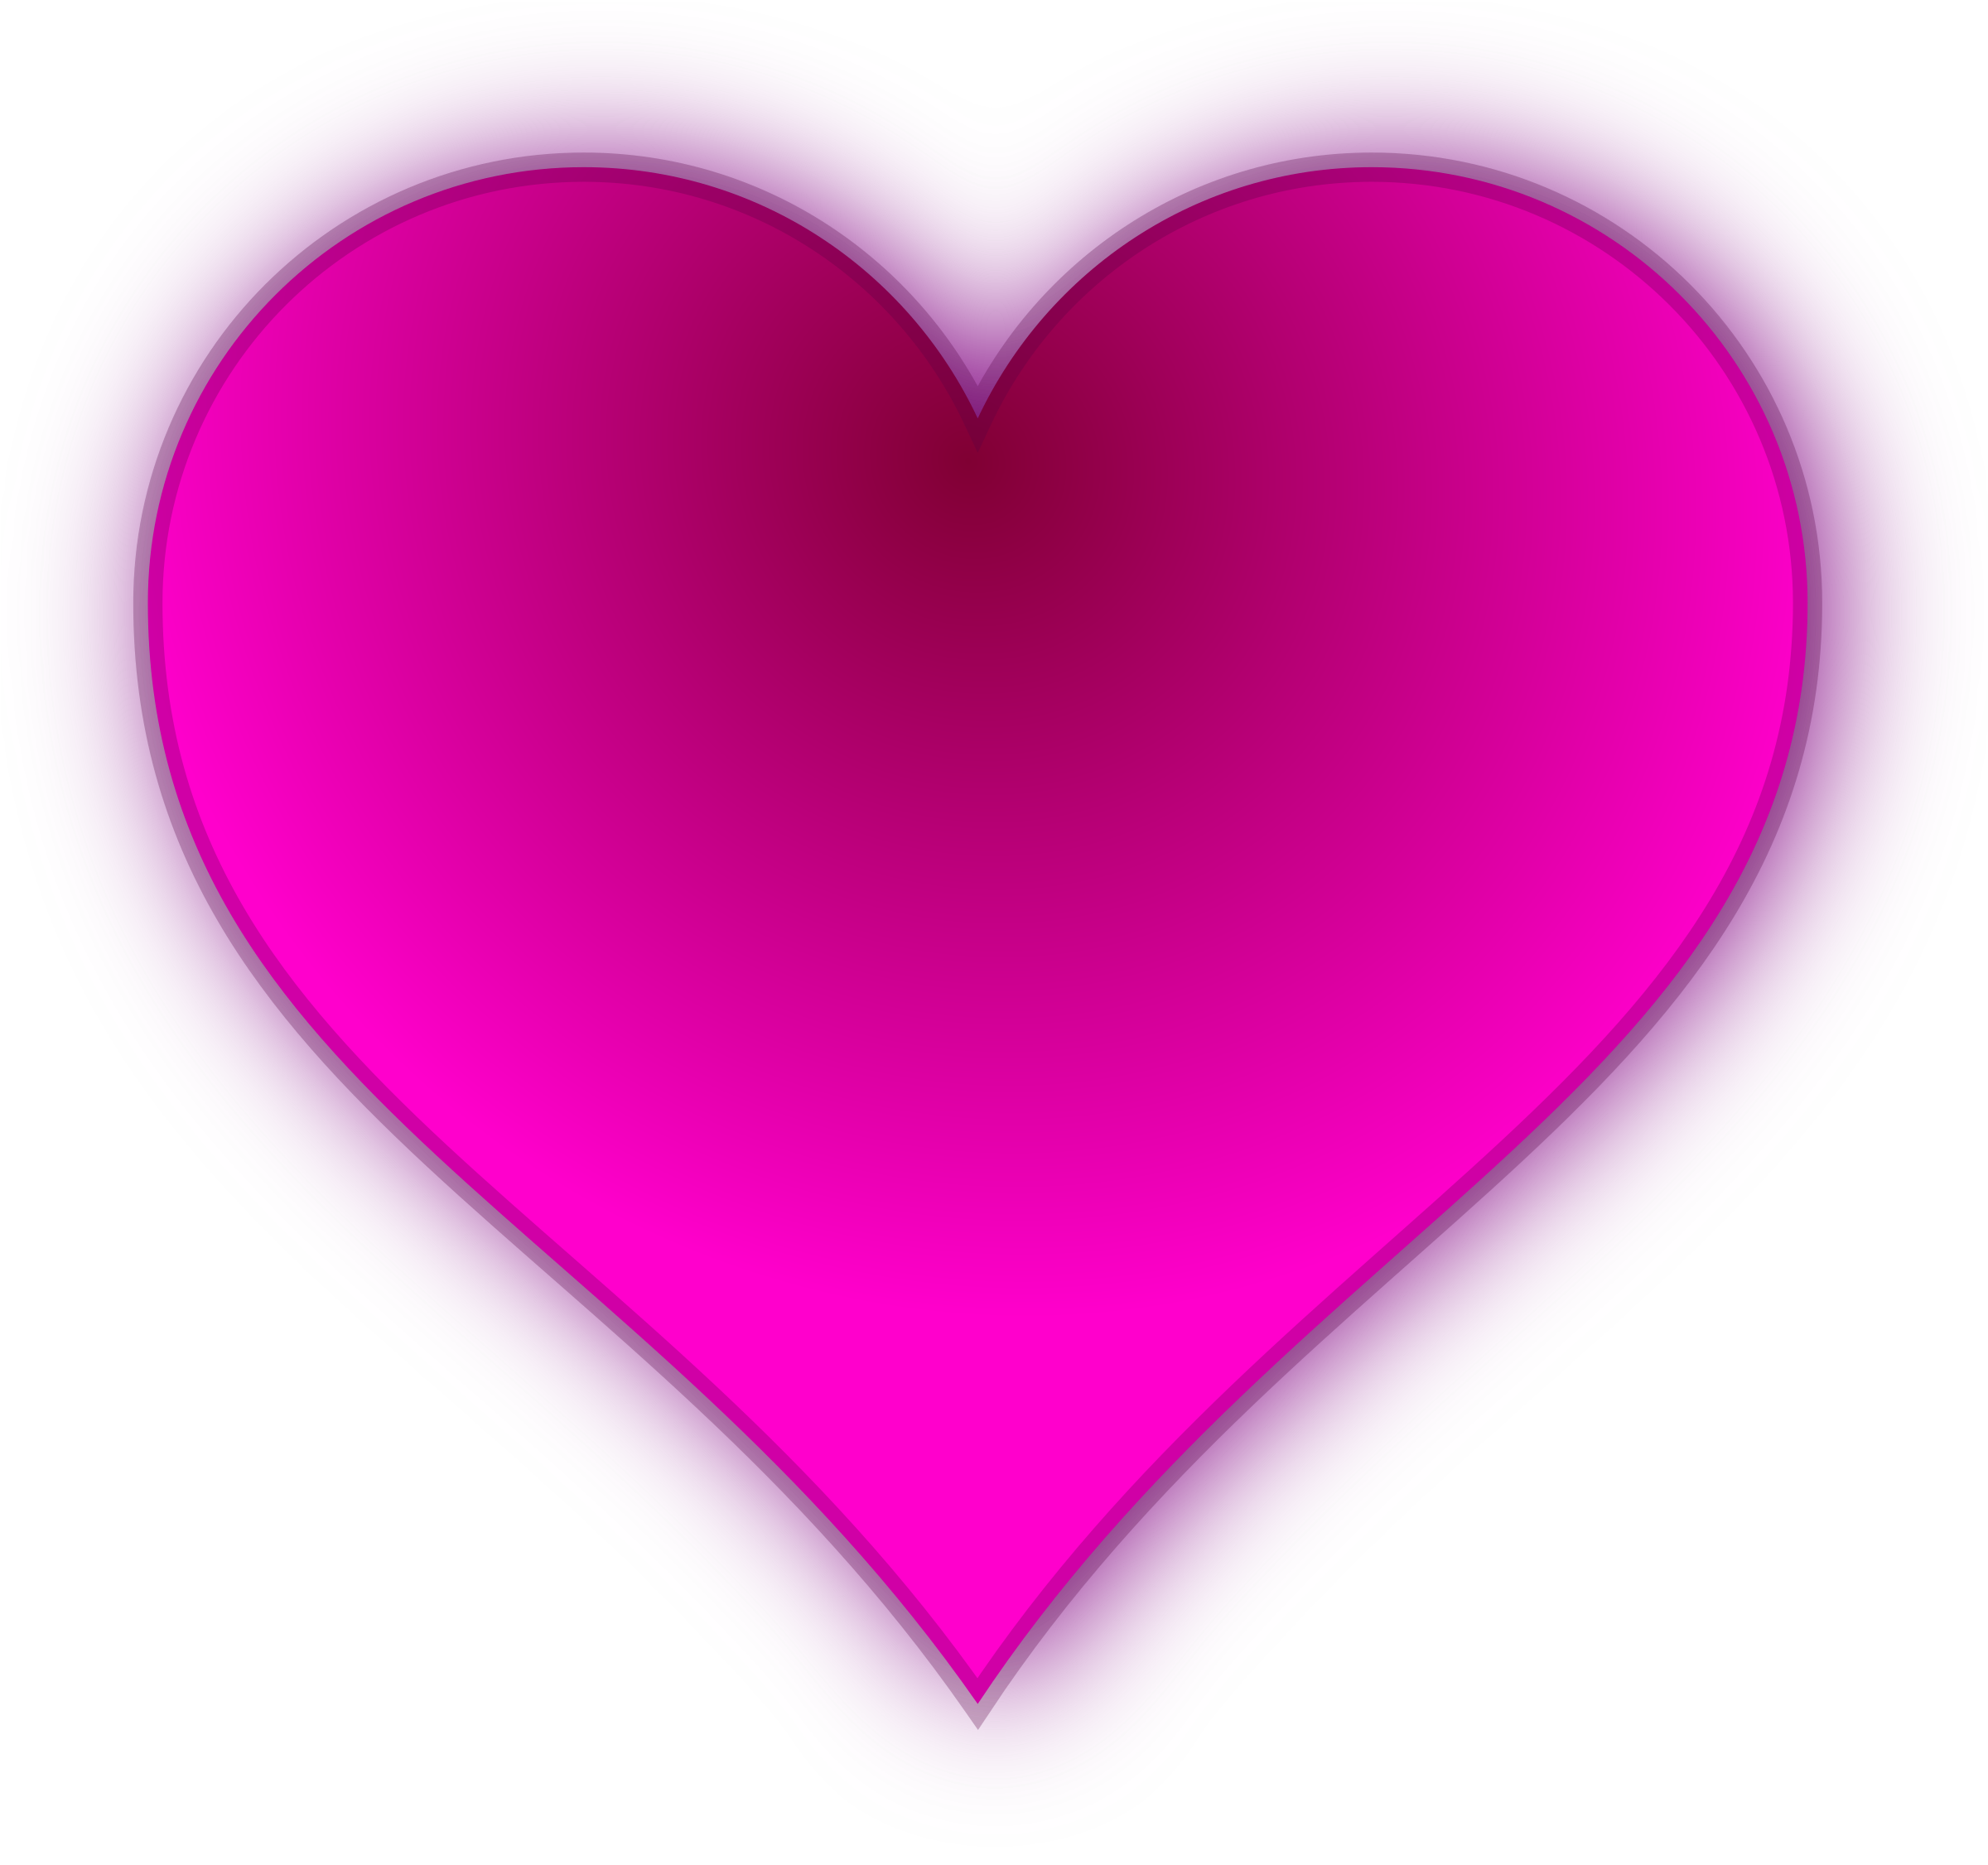 Hearts clipart icon. Rmx heart icons png